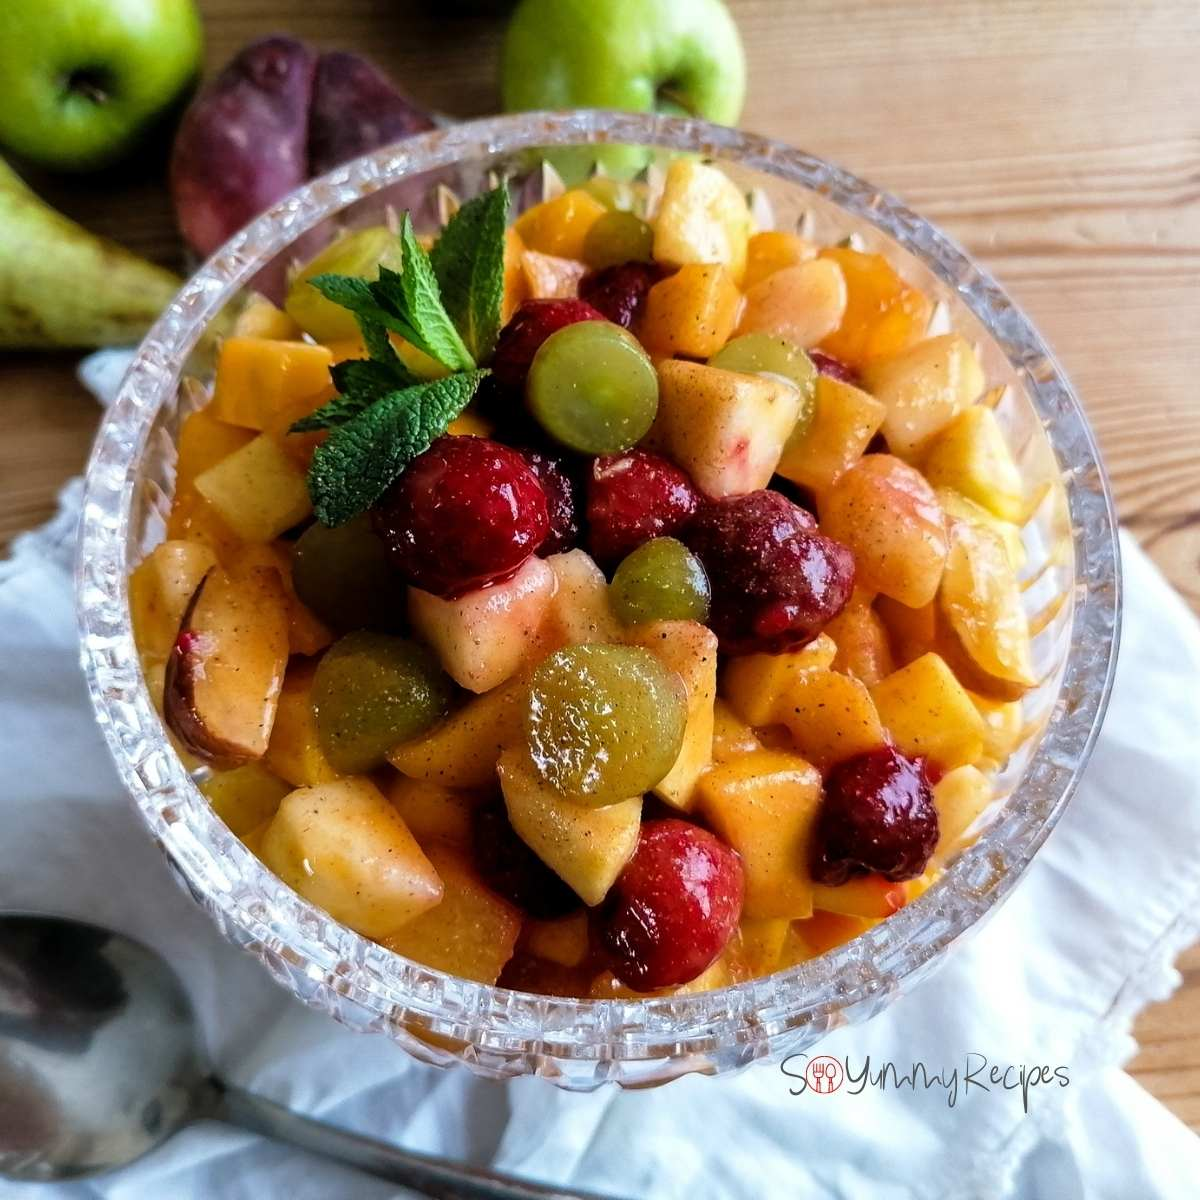 Pakistani style fruit chaat in a crystal bowl with white napkin, a spoon and some fruits on the background